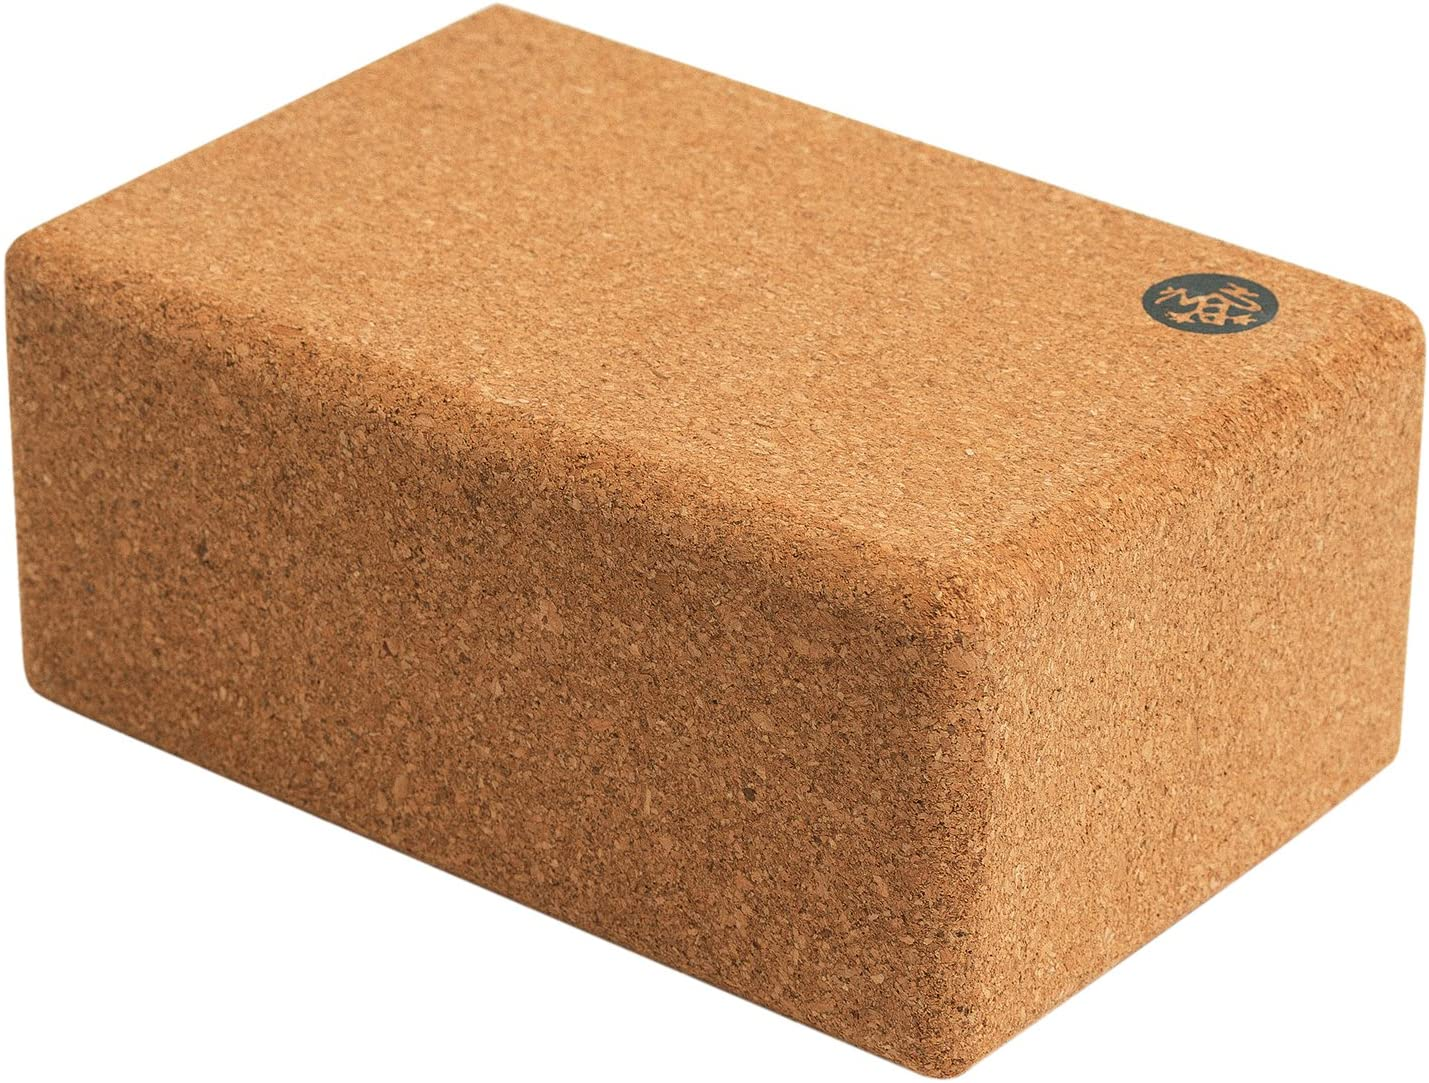 Manduka Premium High Density Cork Yoga Block